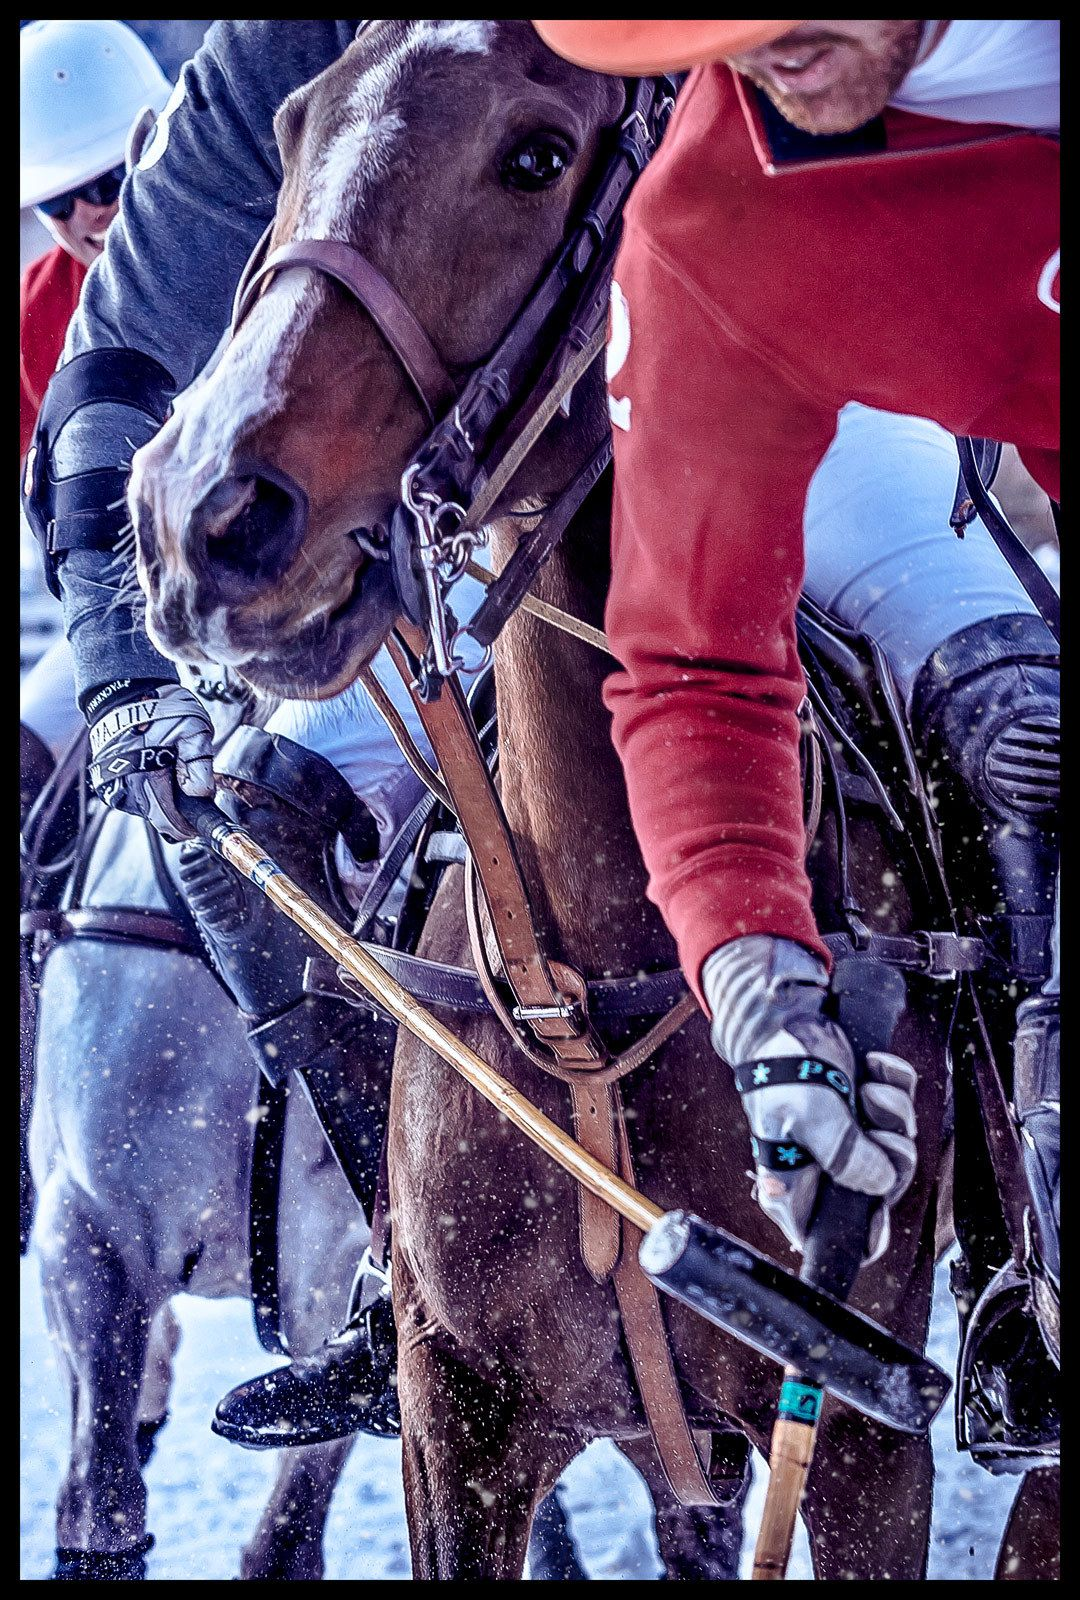 1snow_polo_action_hook_2